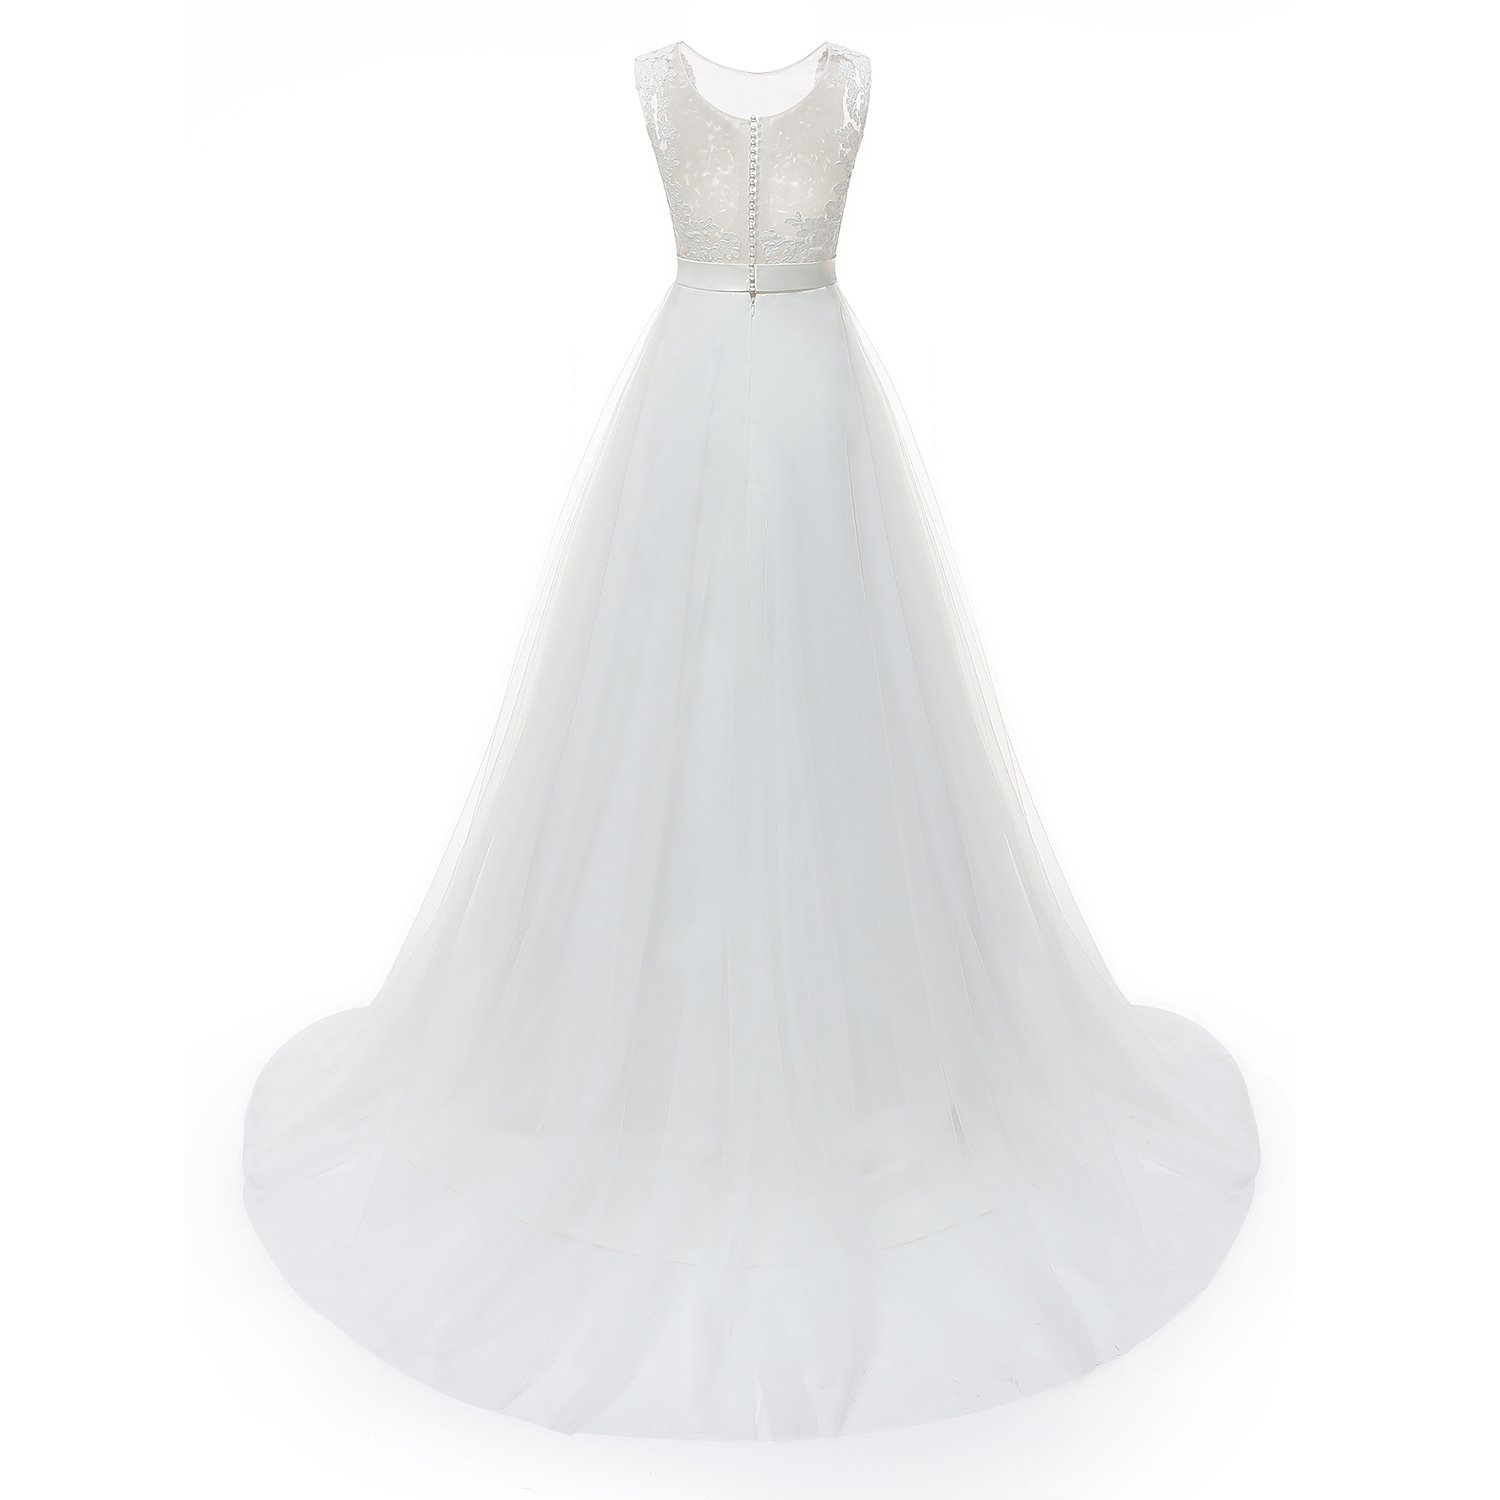 7ffda53833e3 Molixin Women's Plus Size Wedding Dresses Round Neck Bridal Gowns Outdoor Prom  Dress at Amazon Women's Clothing store: